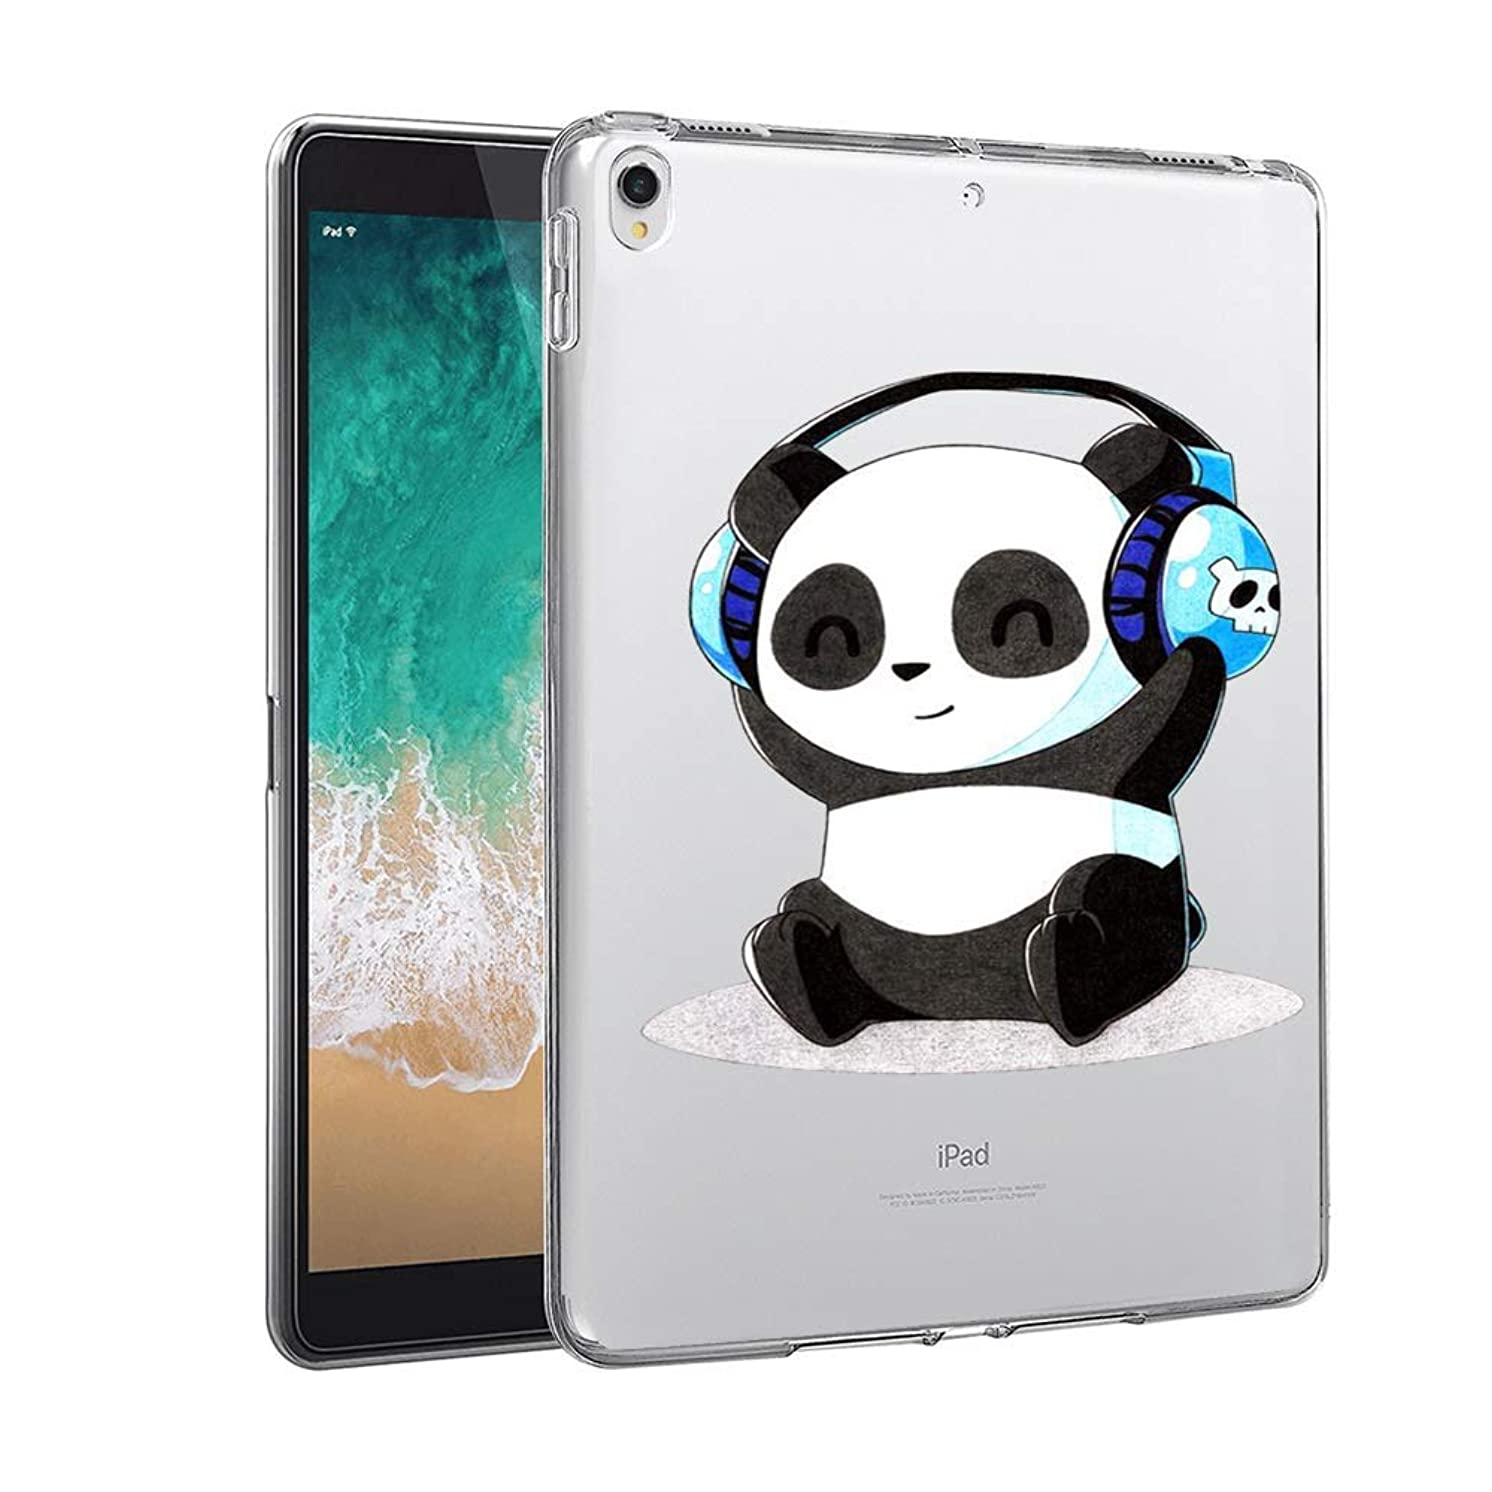 GinHo Customized Protective Cover iPad Pro 12.9 inch 2018 Panda with Slim Soft Durable TPU Ultra-Clear Silicone UV Printing Case